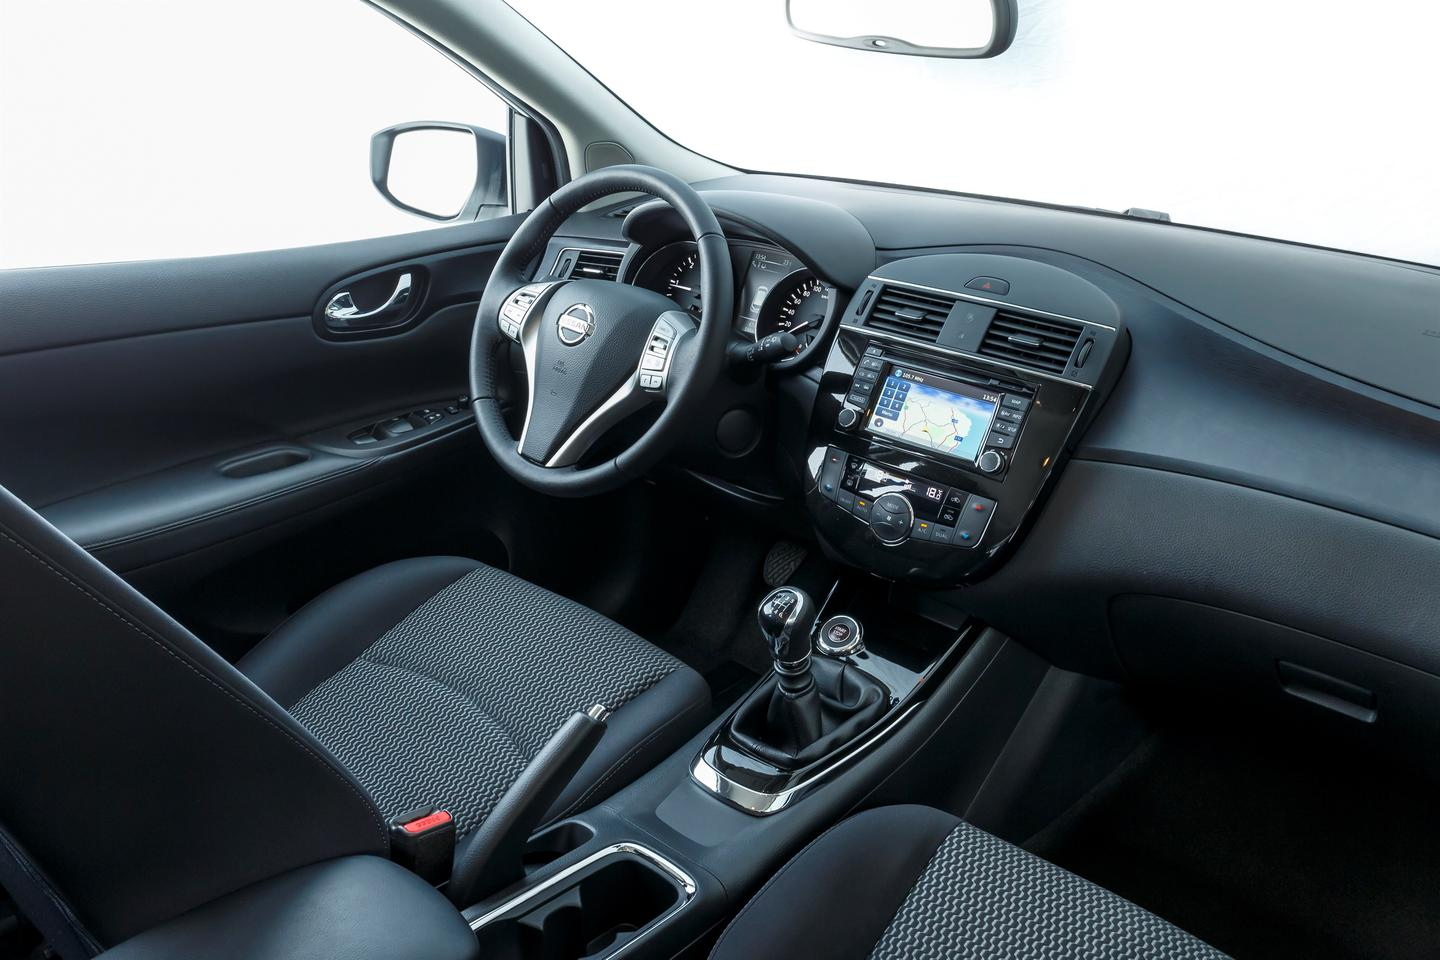 Nissan claims the Pulsar's interior is more spacious than that of its competitors